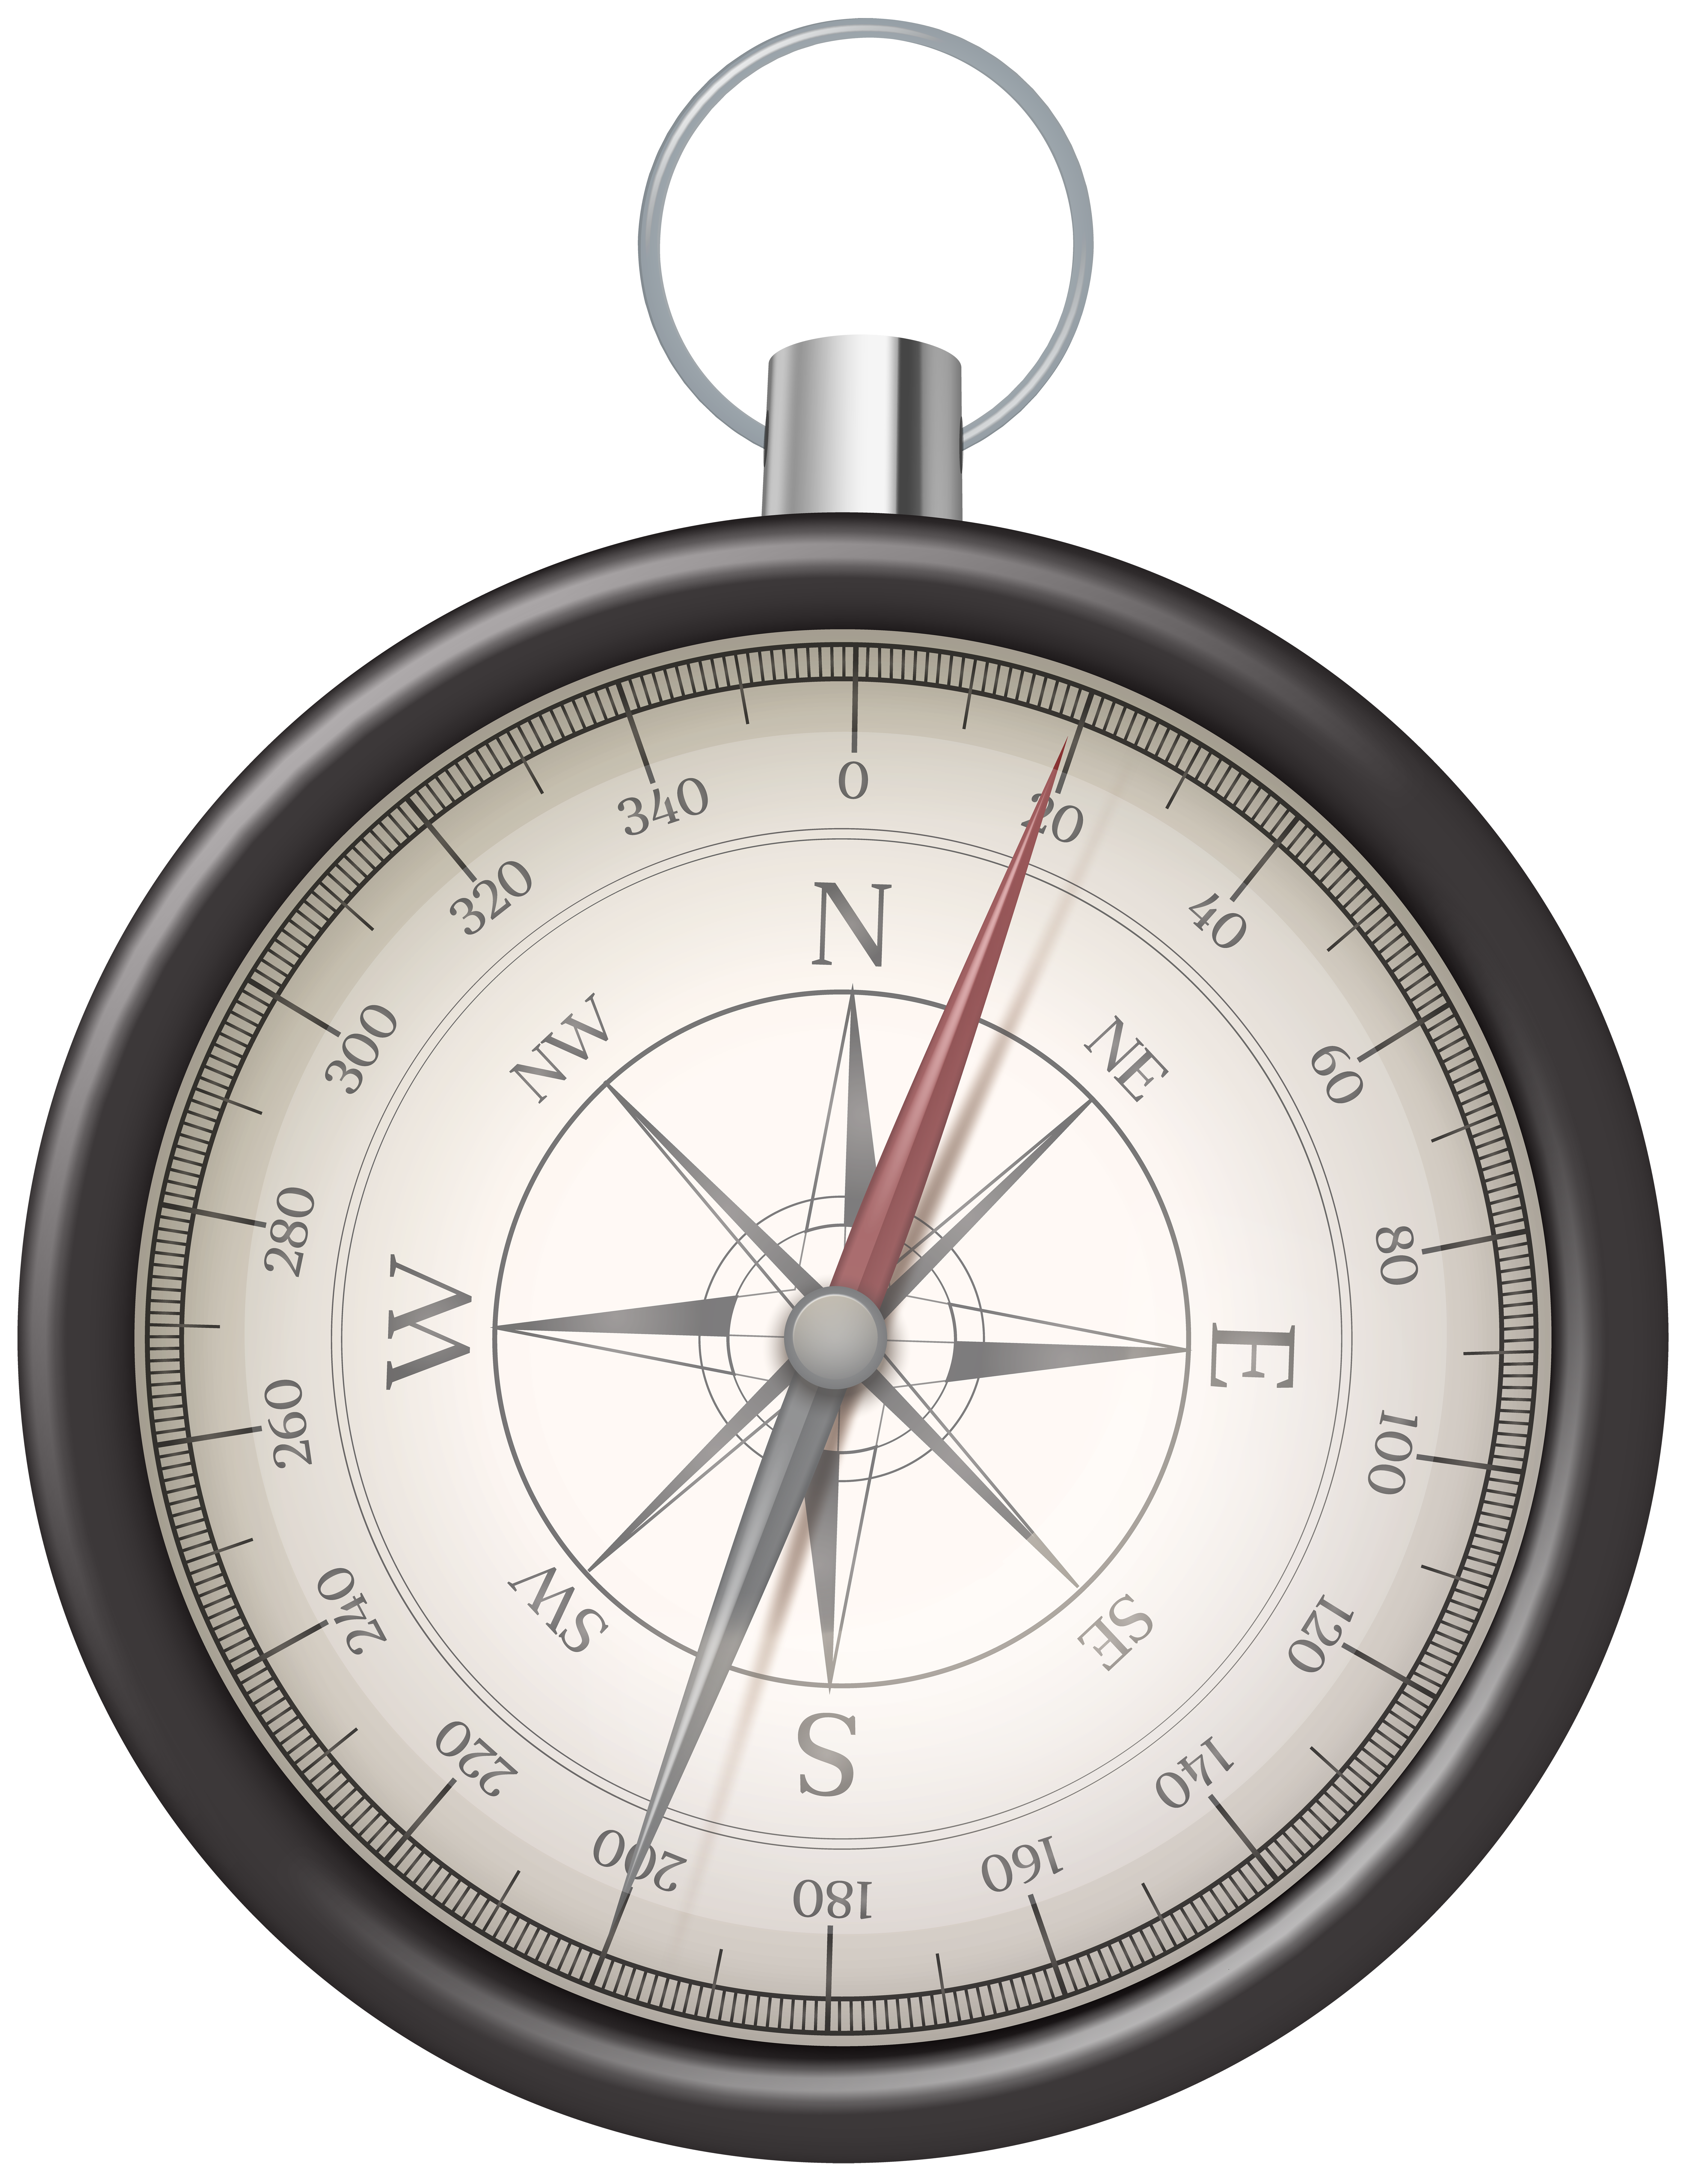 Stopwatch clipart clip art. Compass png image gallery